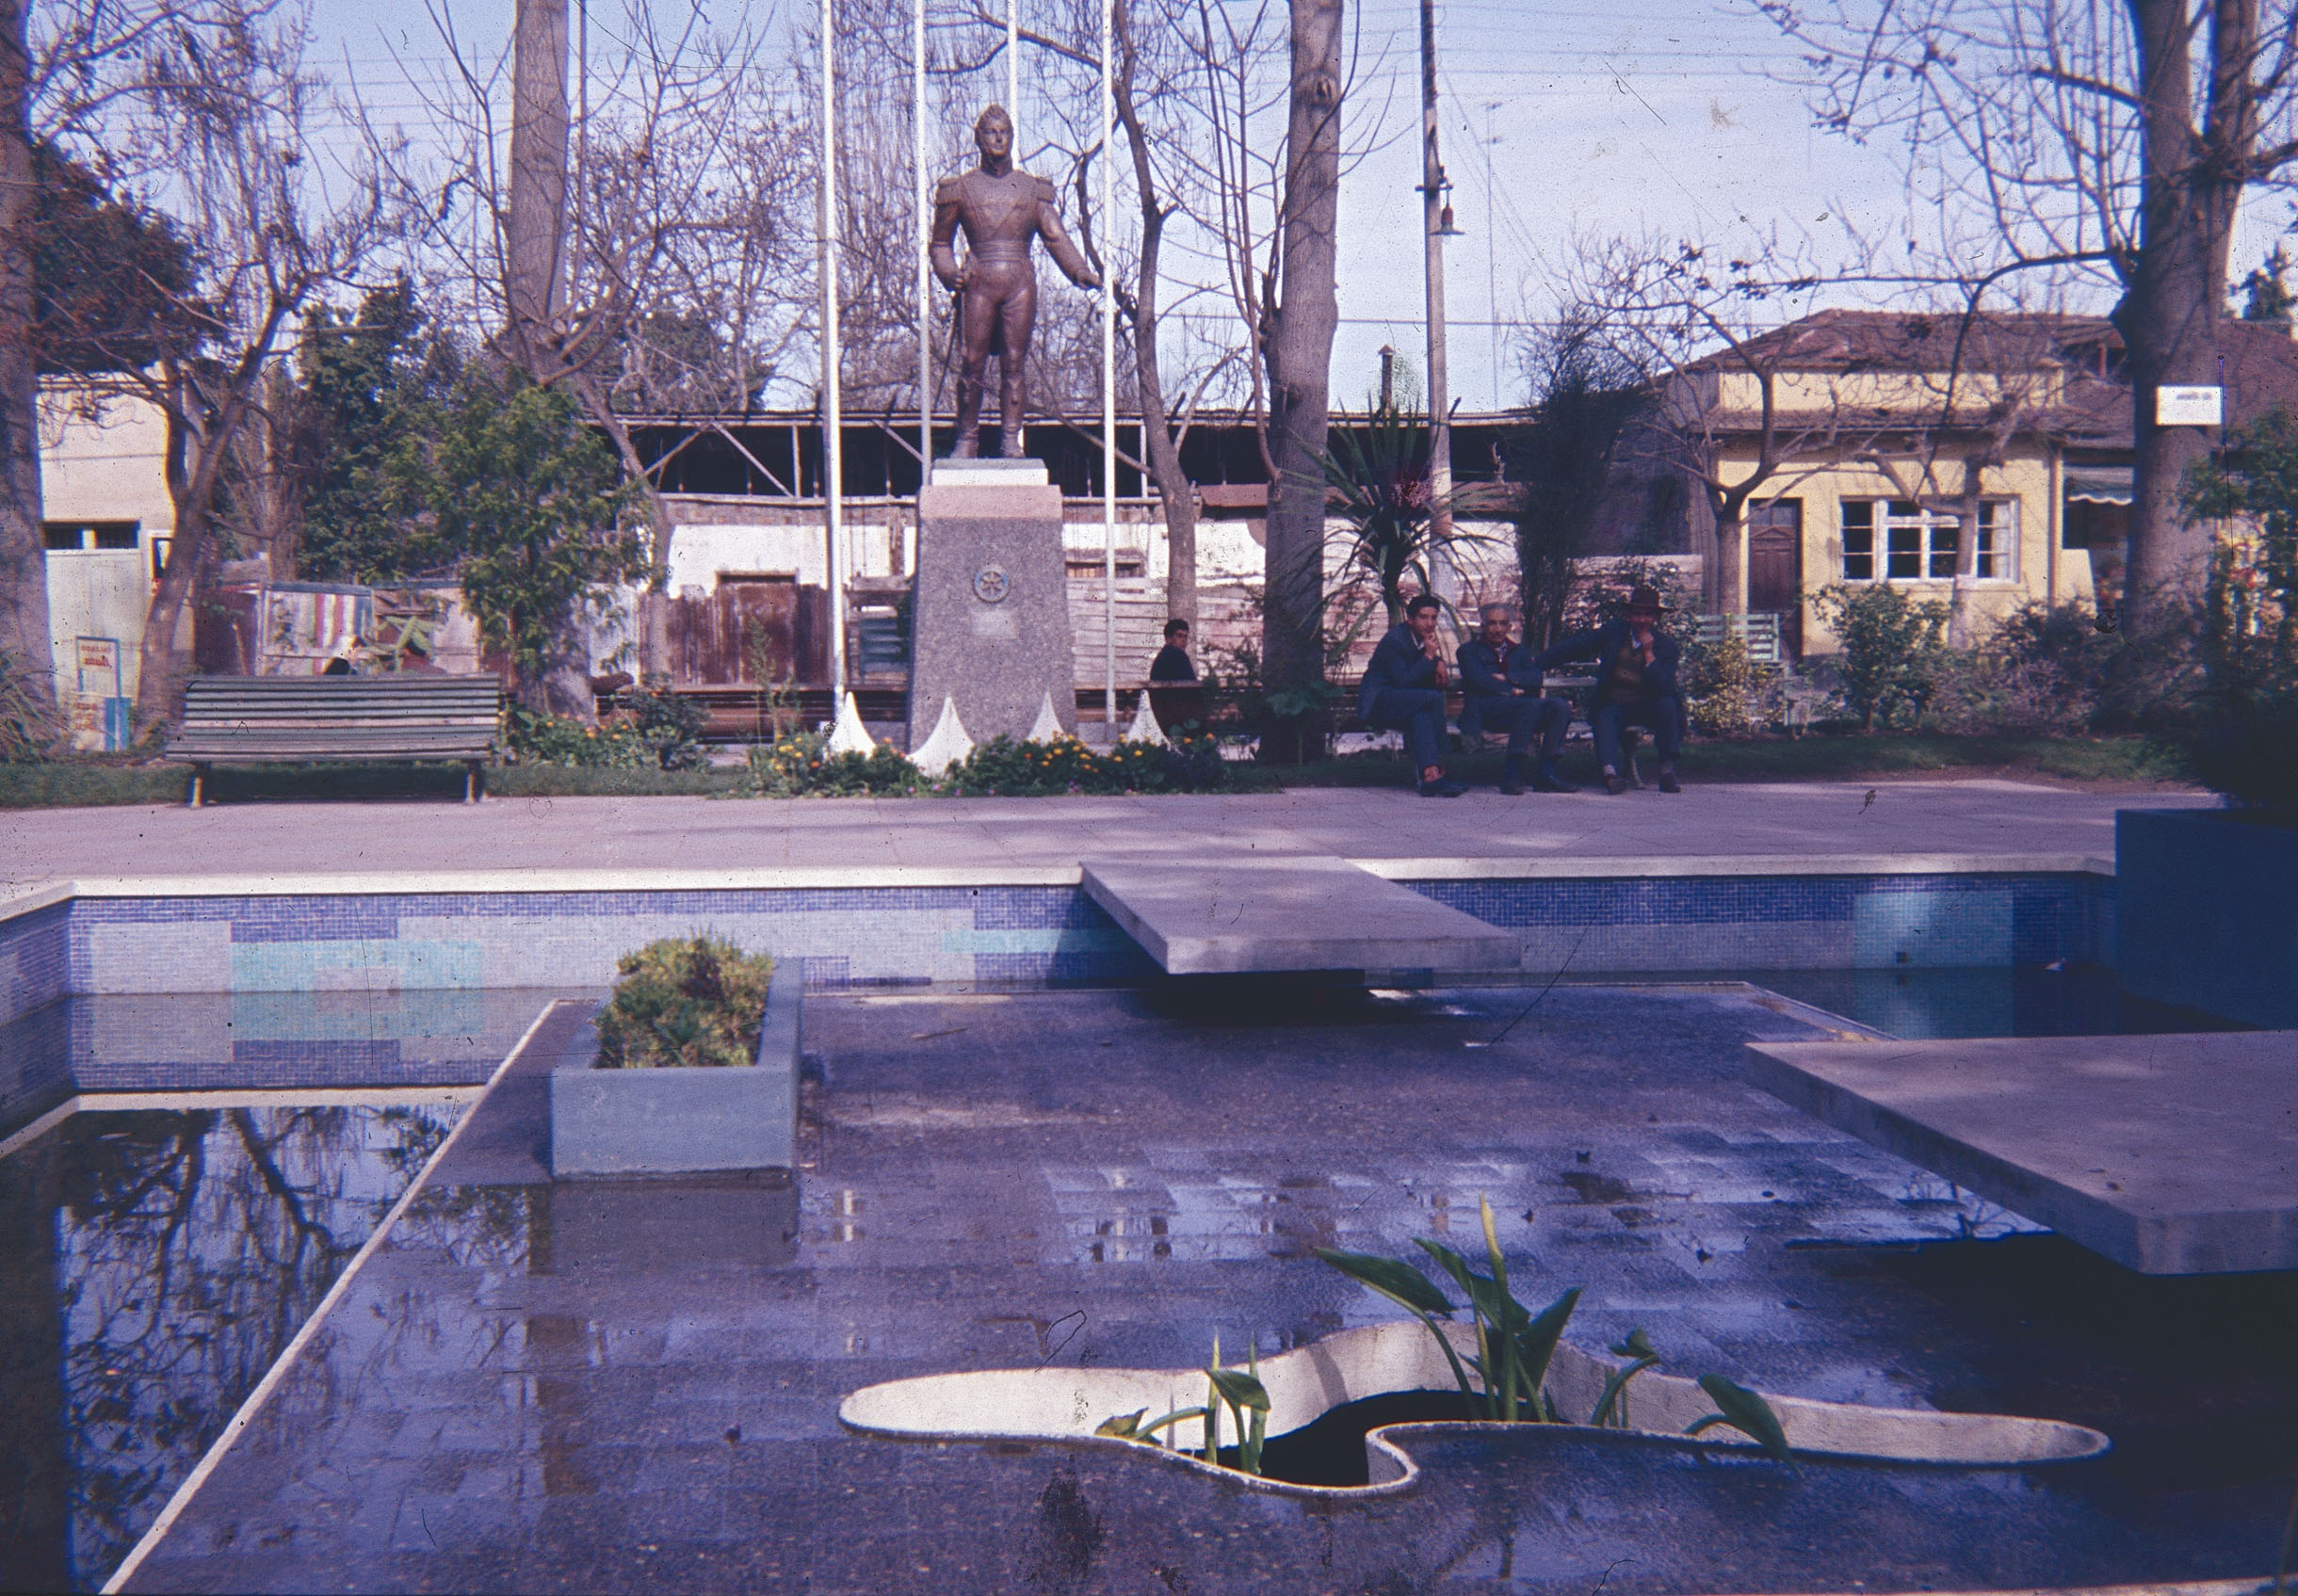 Enterreno - Fotos históricas de chile - fotos antiguas de Chile - Plaza de Armas de Peñaflor en los 60s